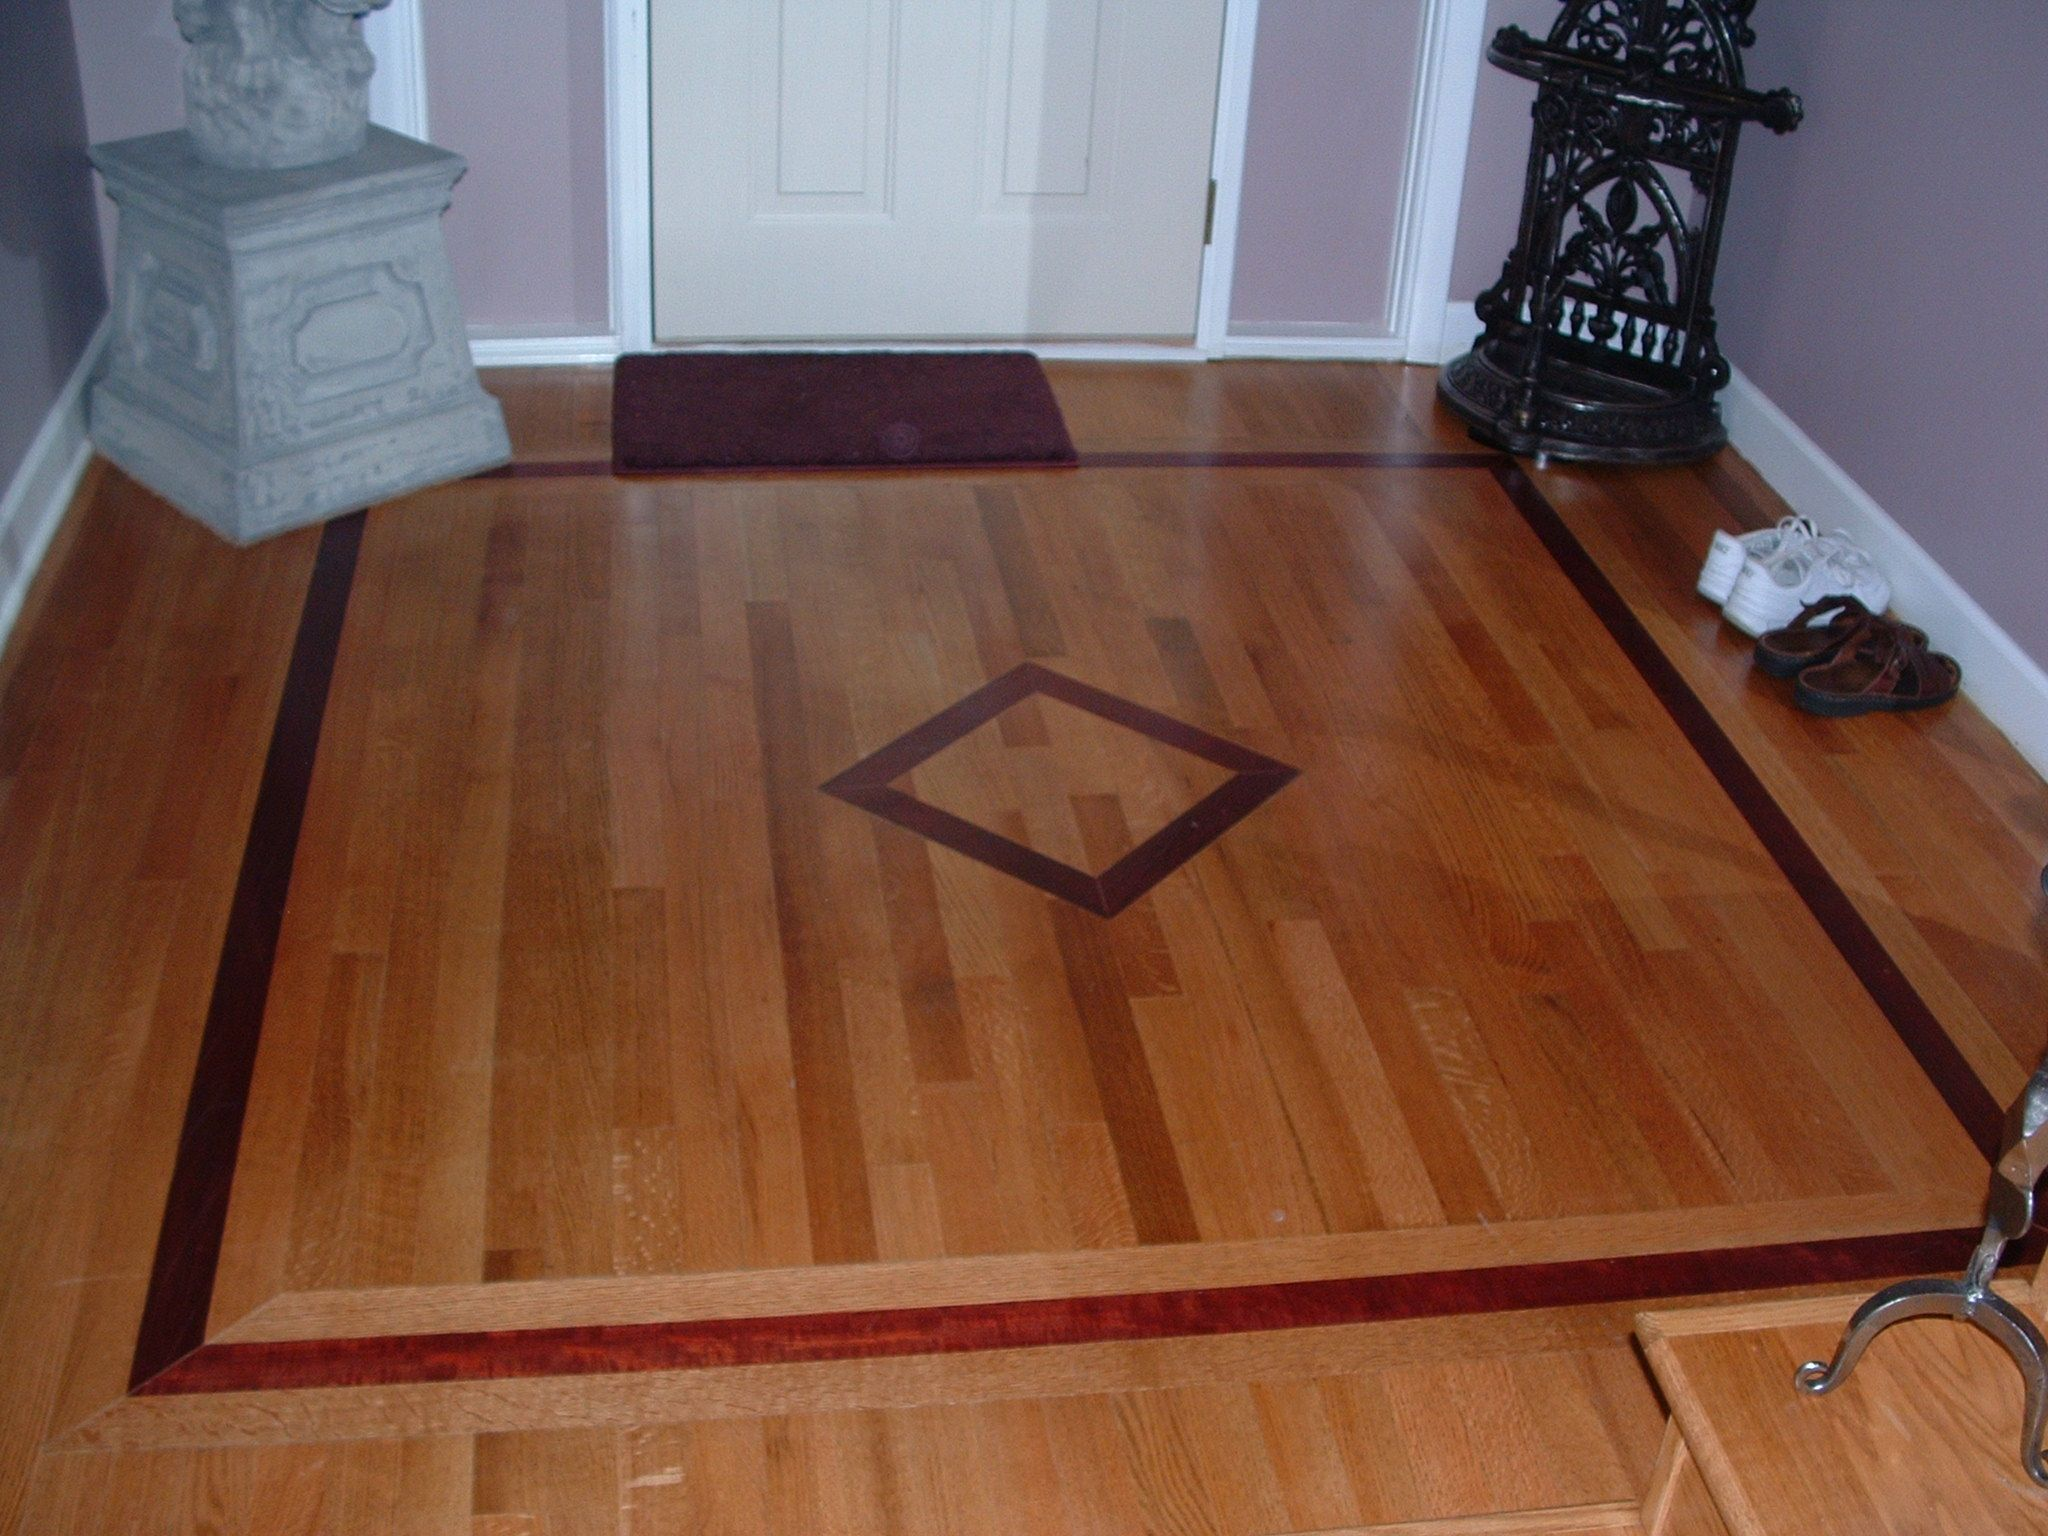 Laying wood floors over ceramic tile httpdreamhomesbyrob laying wood floors over ceramic tile dailygadgetfo Image collections